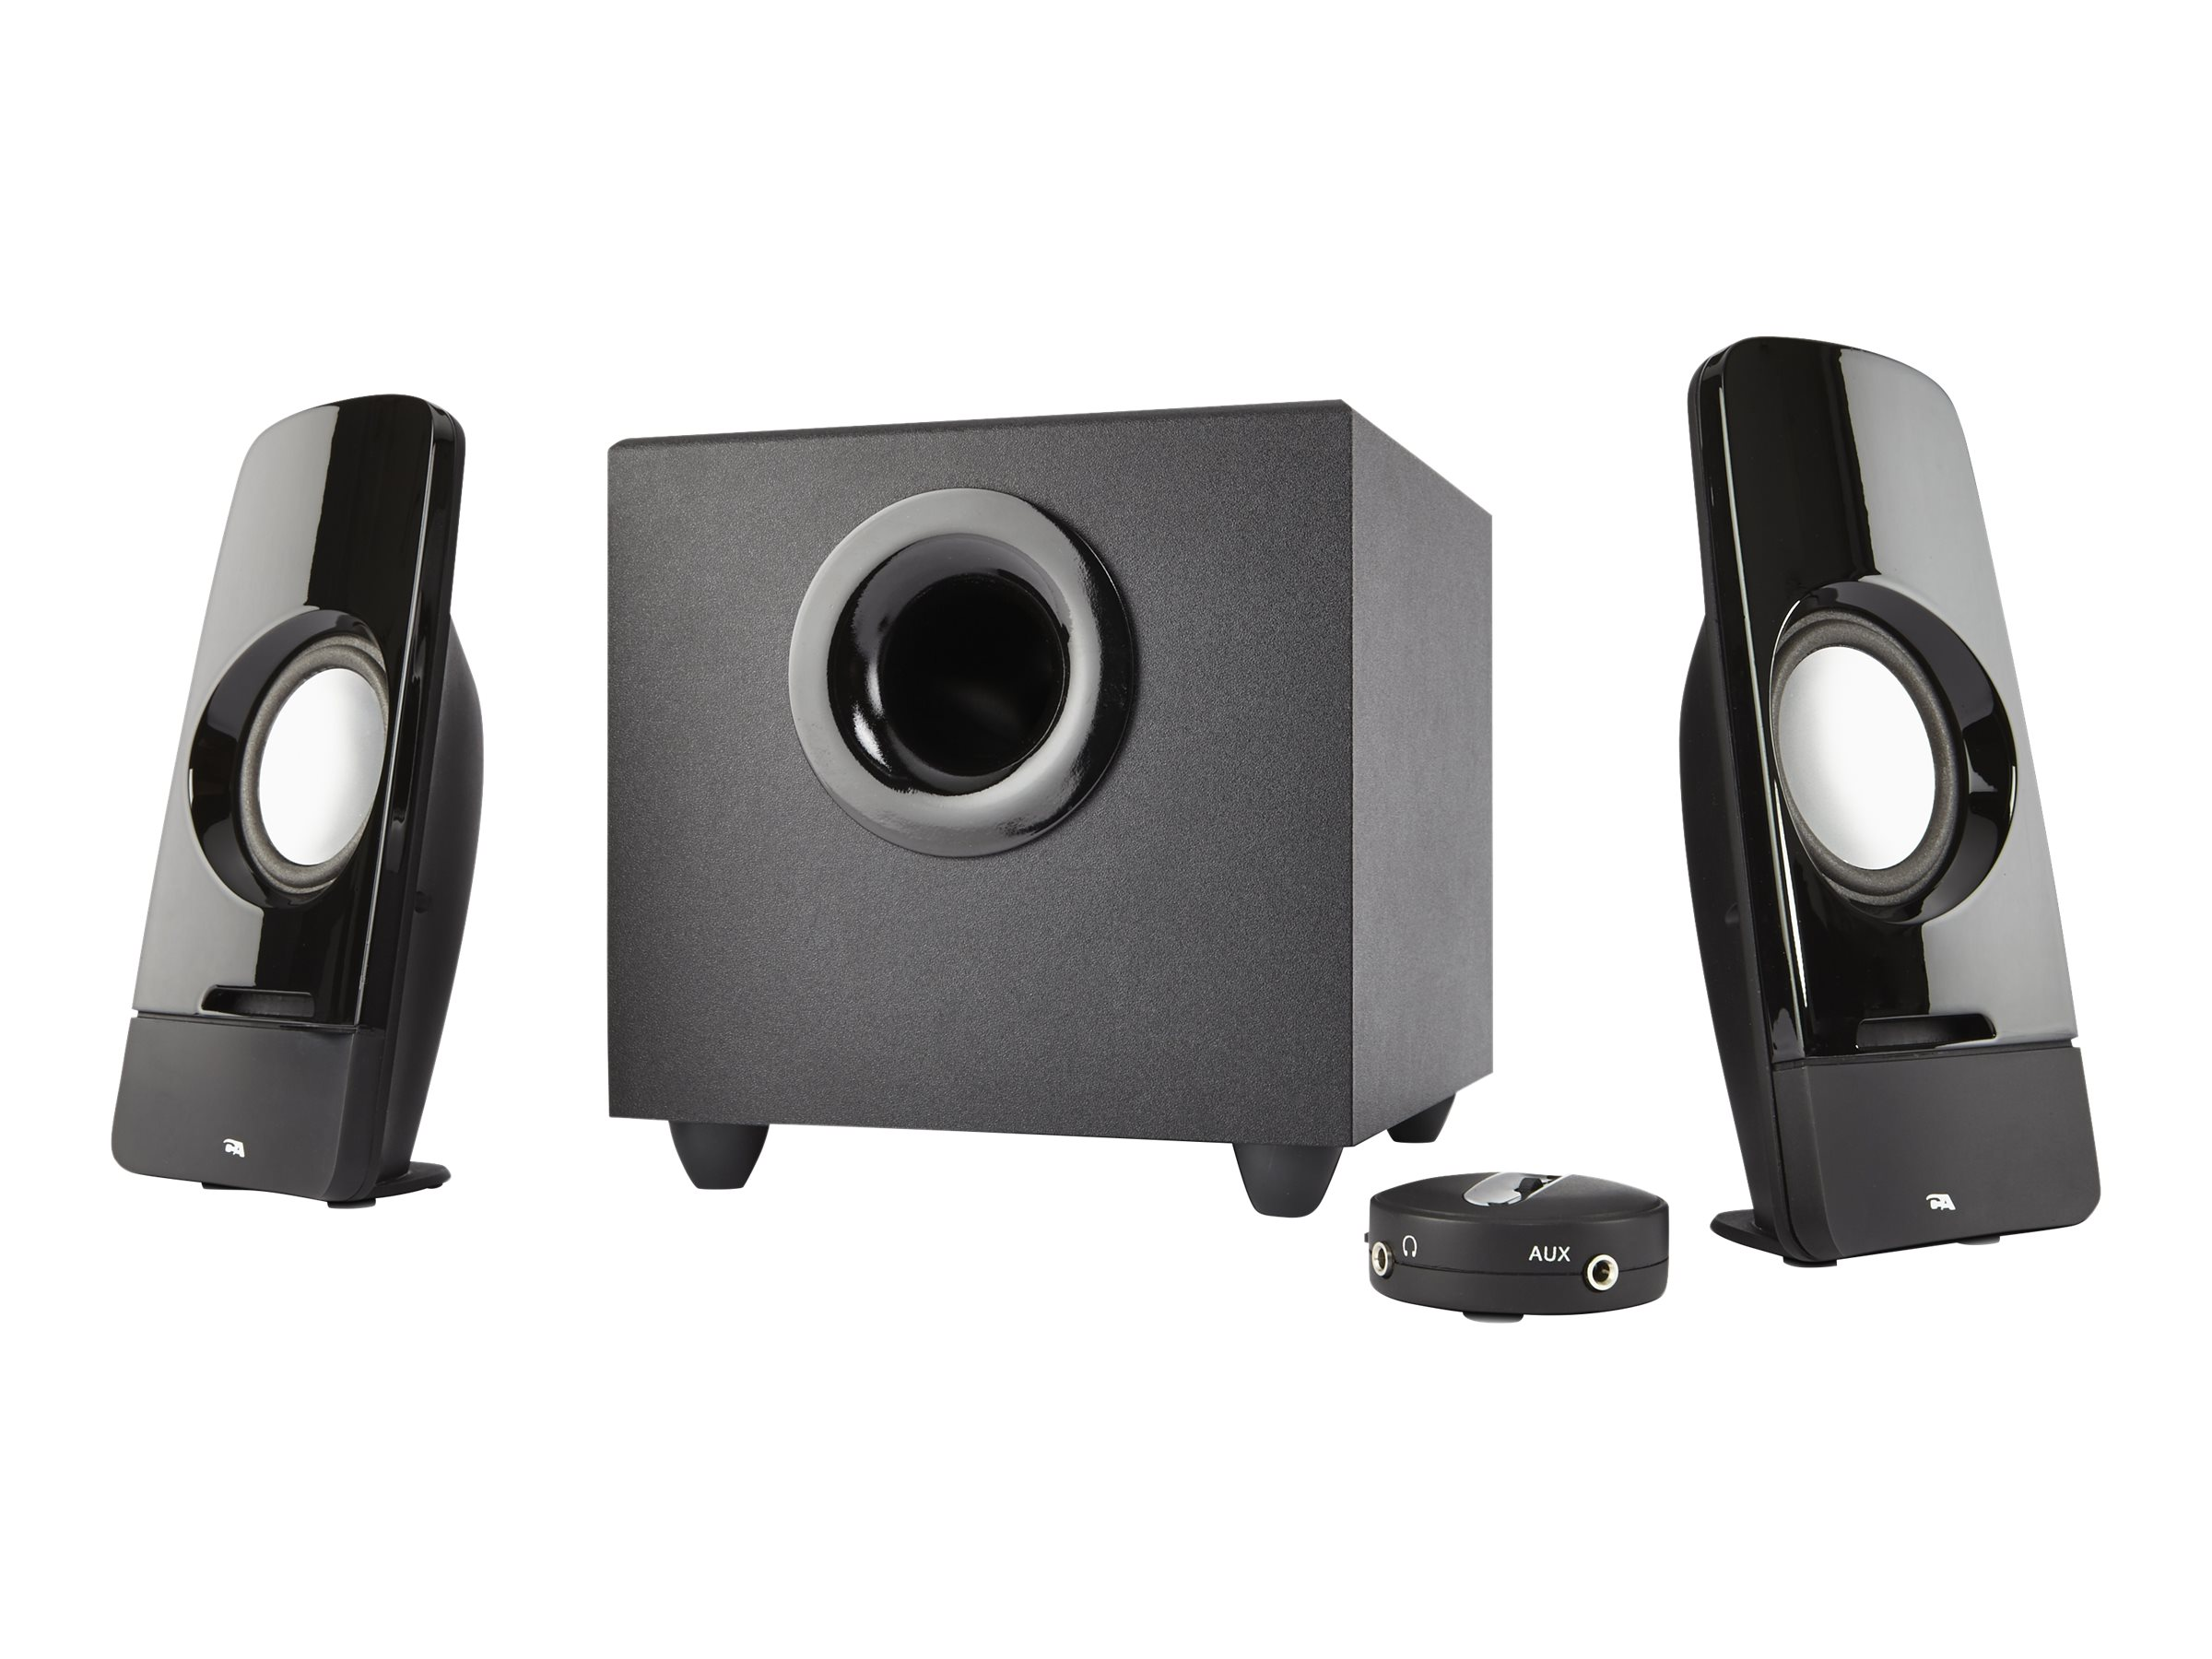 Cyber Acoustics CURVE Series CA-3350 Storm - speaker system - for PC